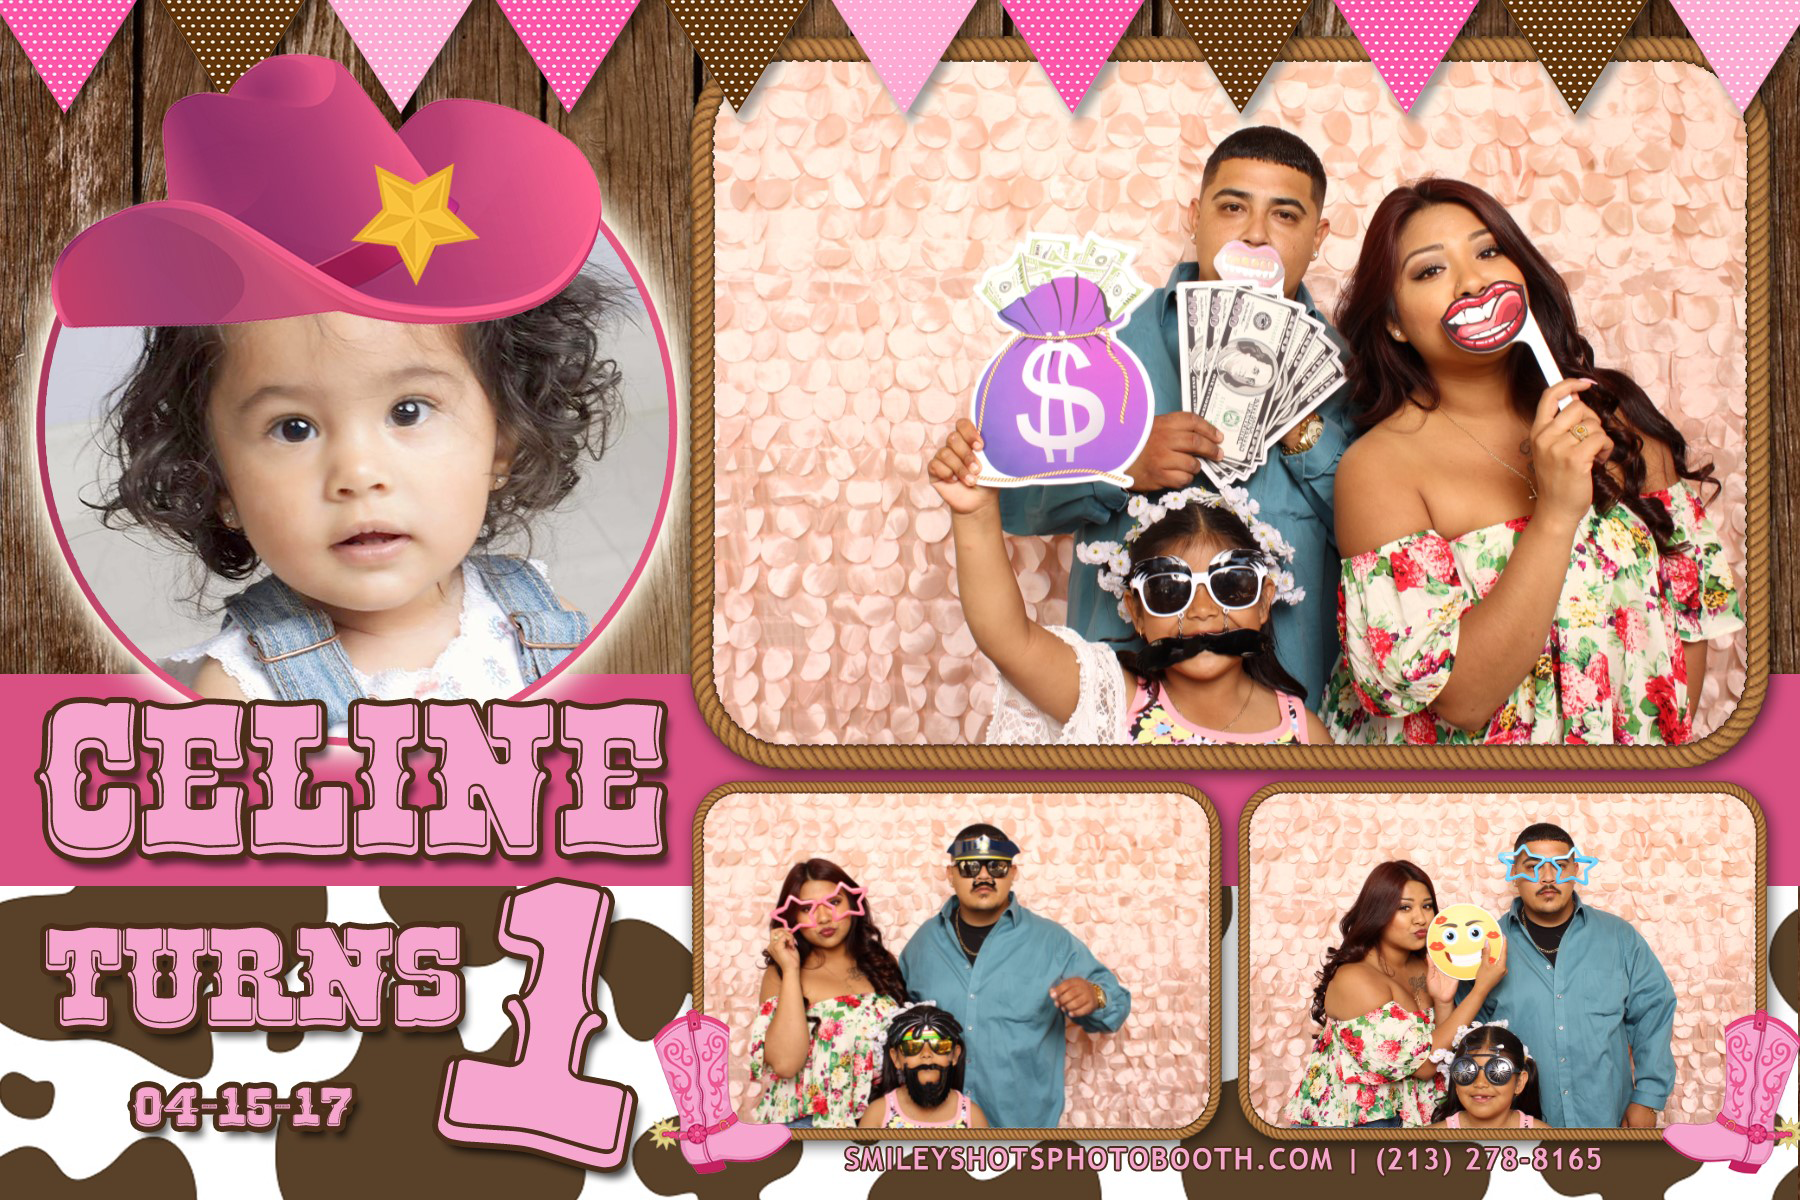 Celine turns 1 Smiley Shots Photo Booth Photobooth (13).png